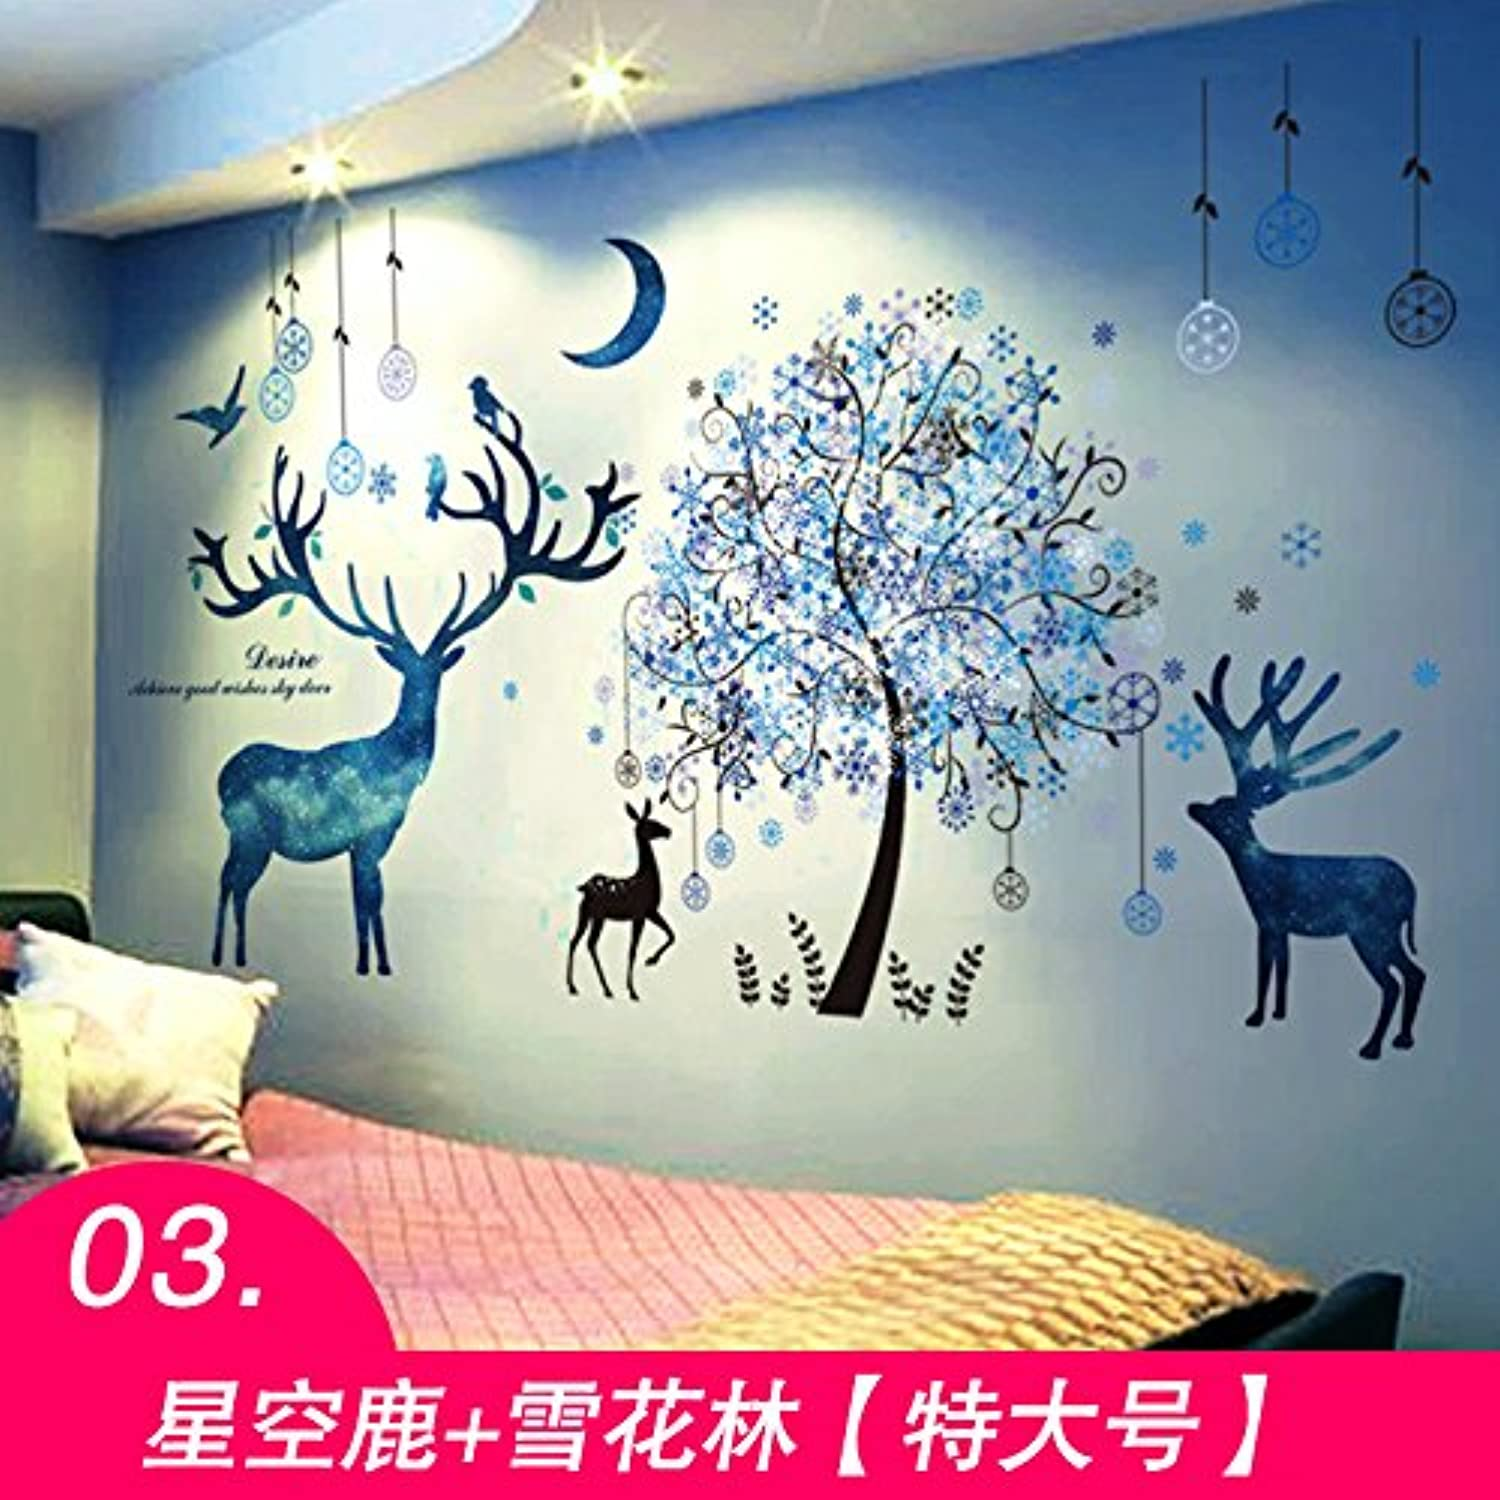 Znzbzt Welcoming Creative Wall Posters Poster Room Wall Decoration Wall Decals, Germany + Snowflake Lin